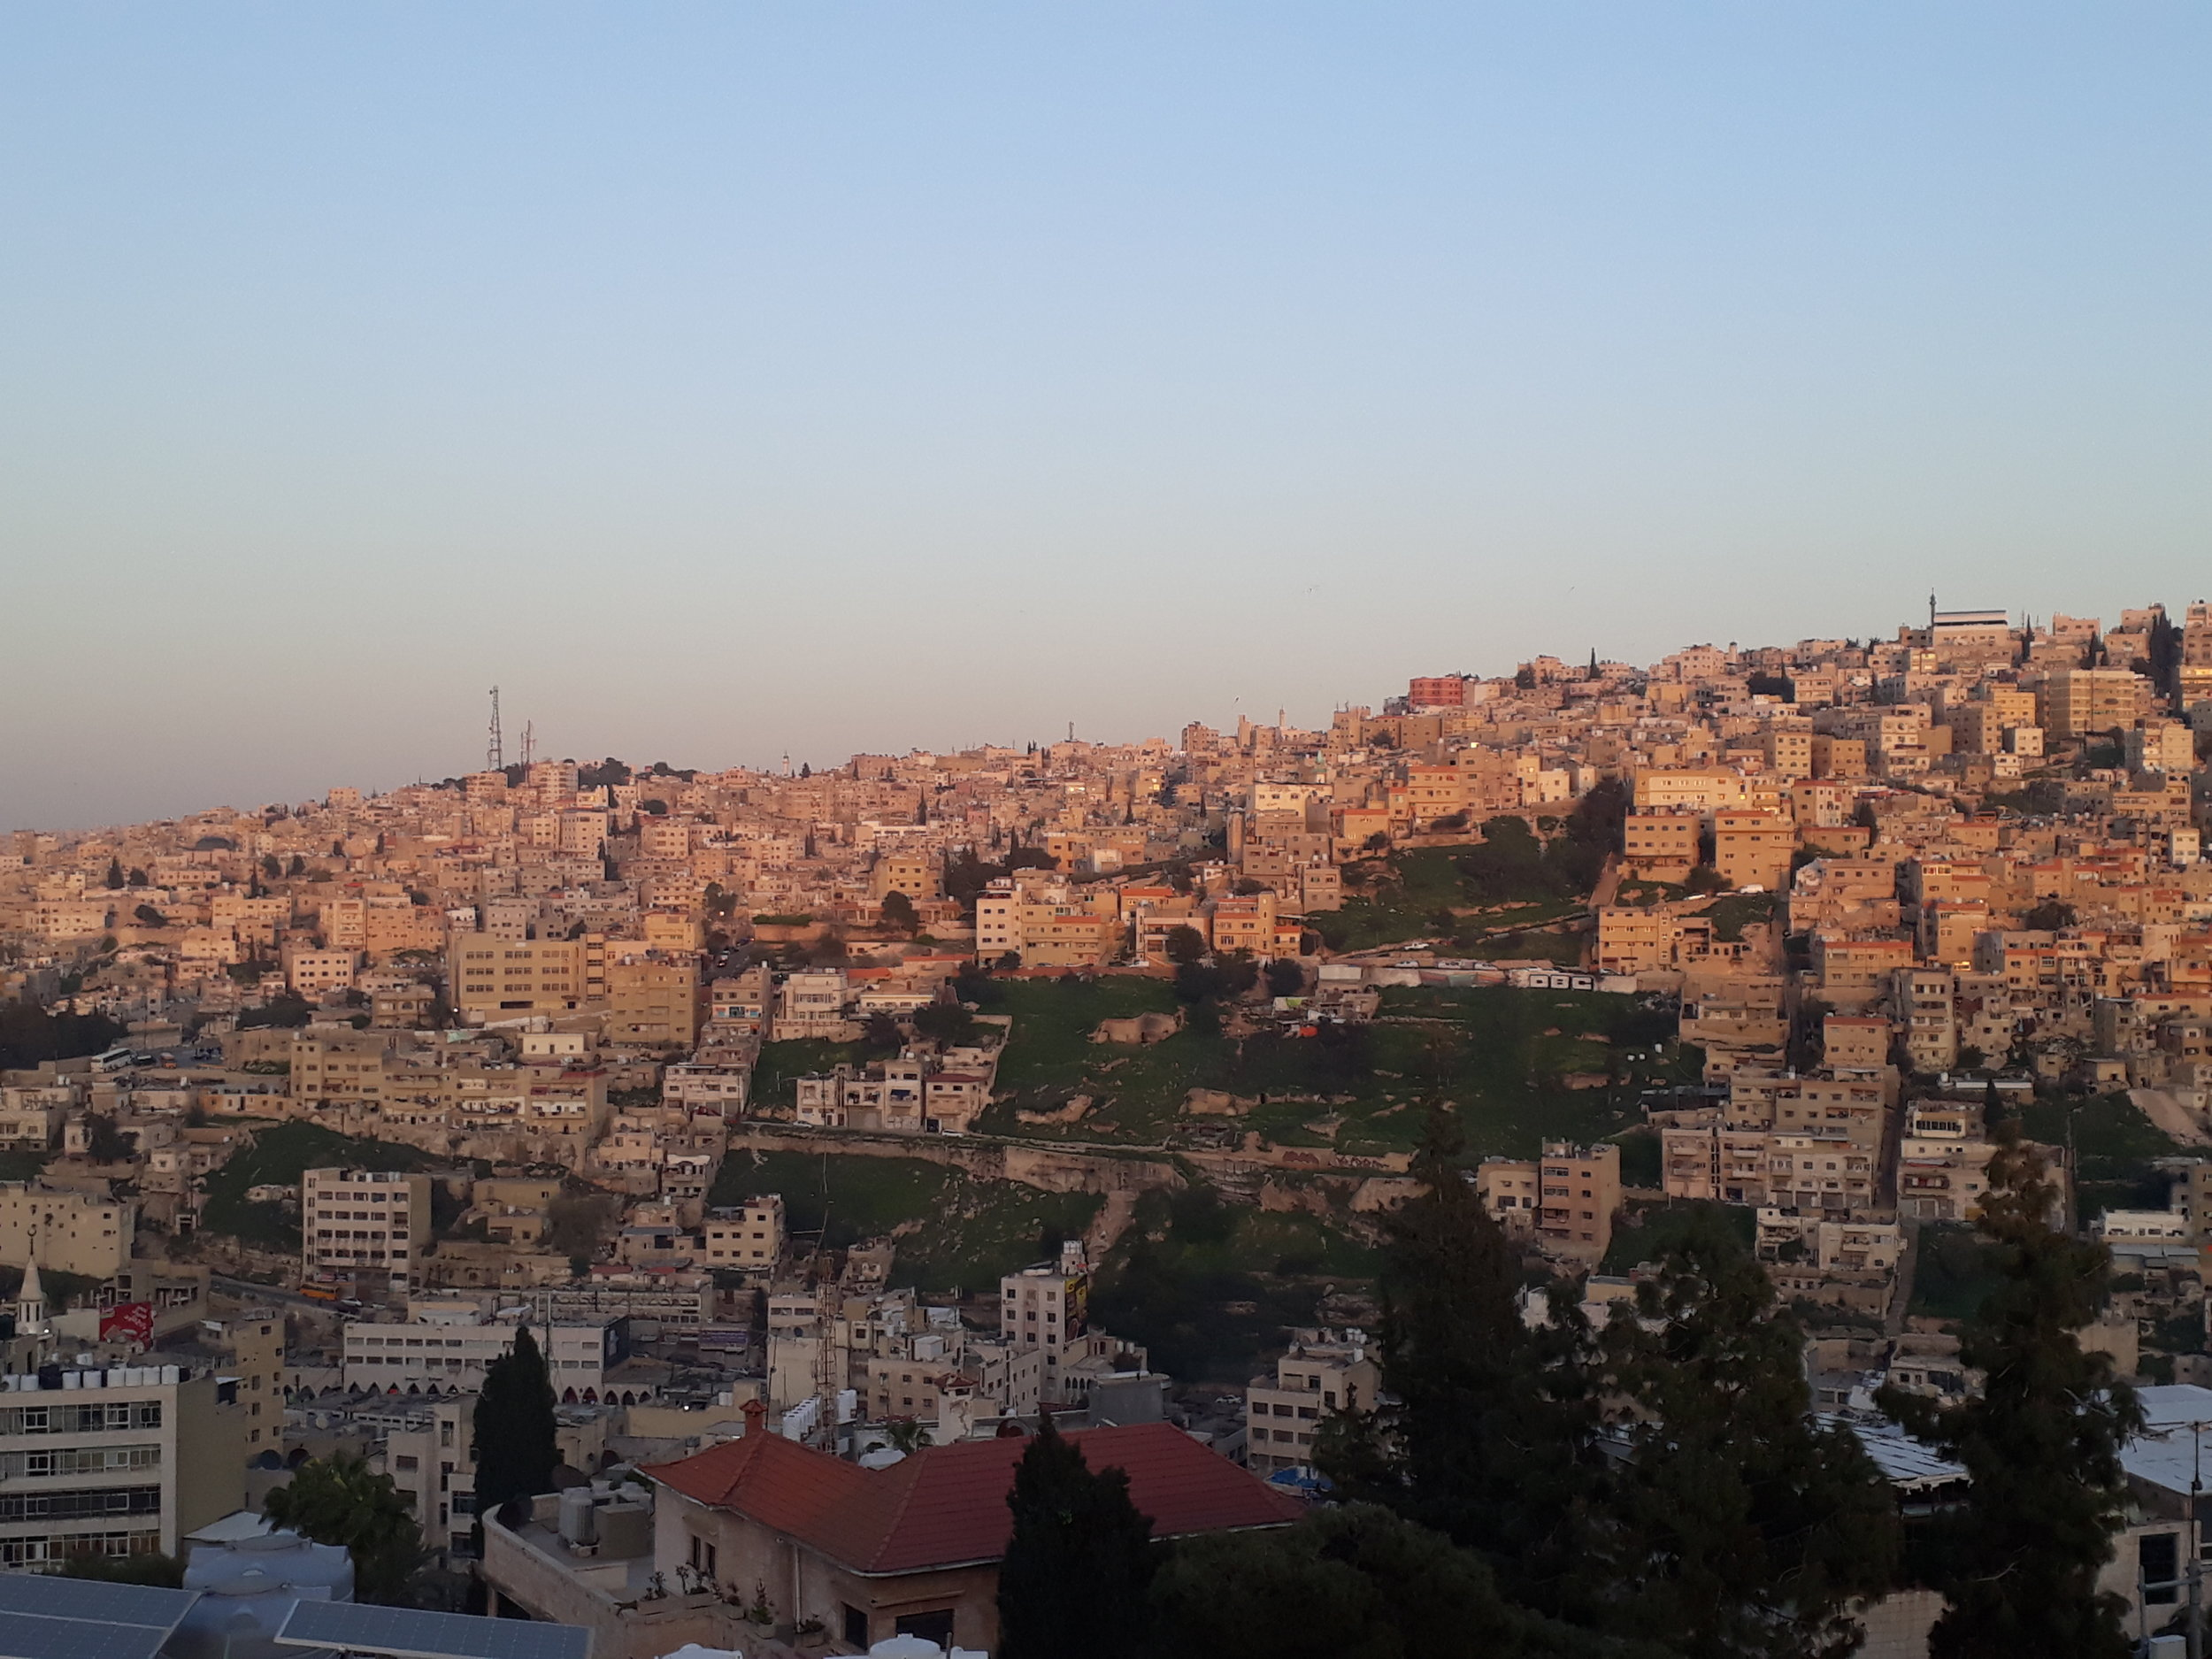 Sunset in Amman as seen from the panoramic rooftop